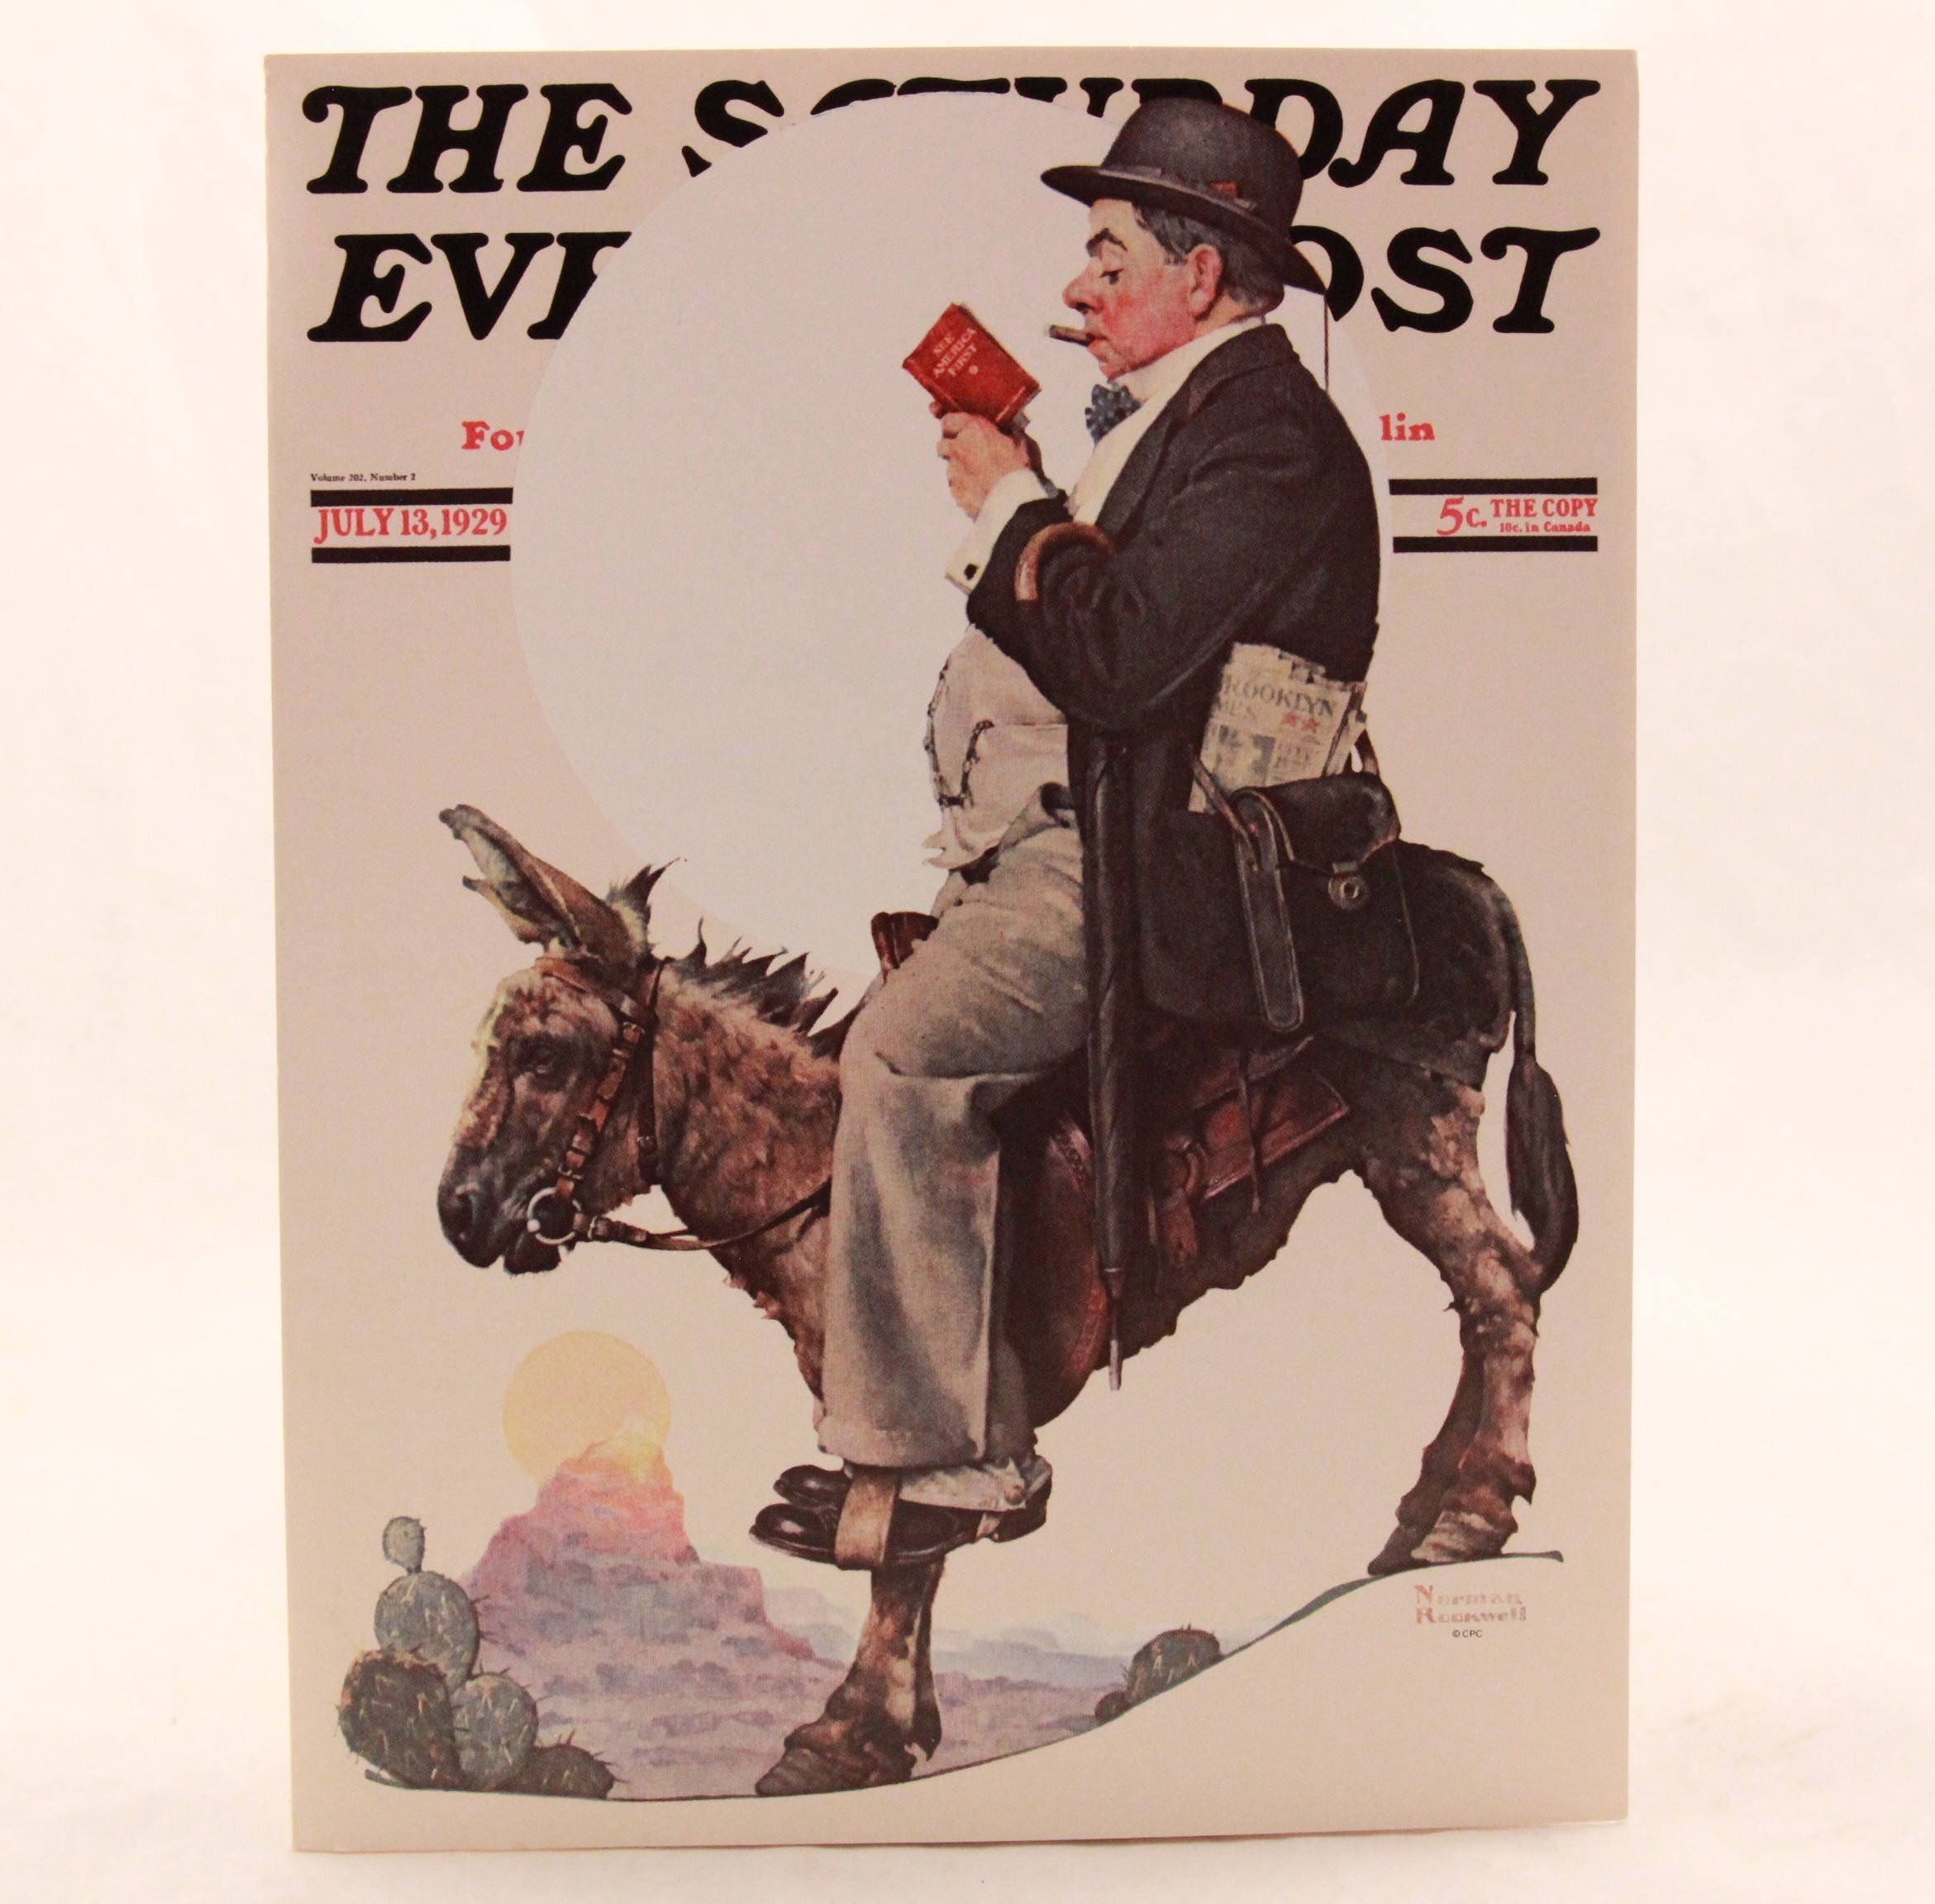 New Vintage The Saturday Evening Post Humor Ill Be Seeing You Soon